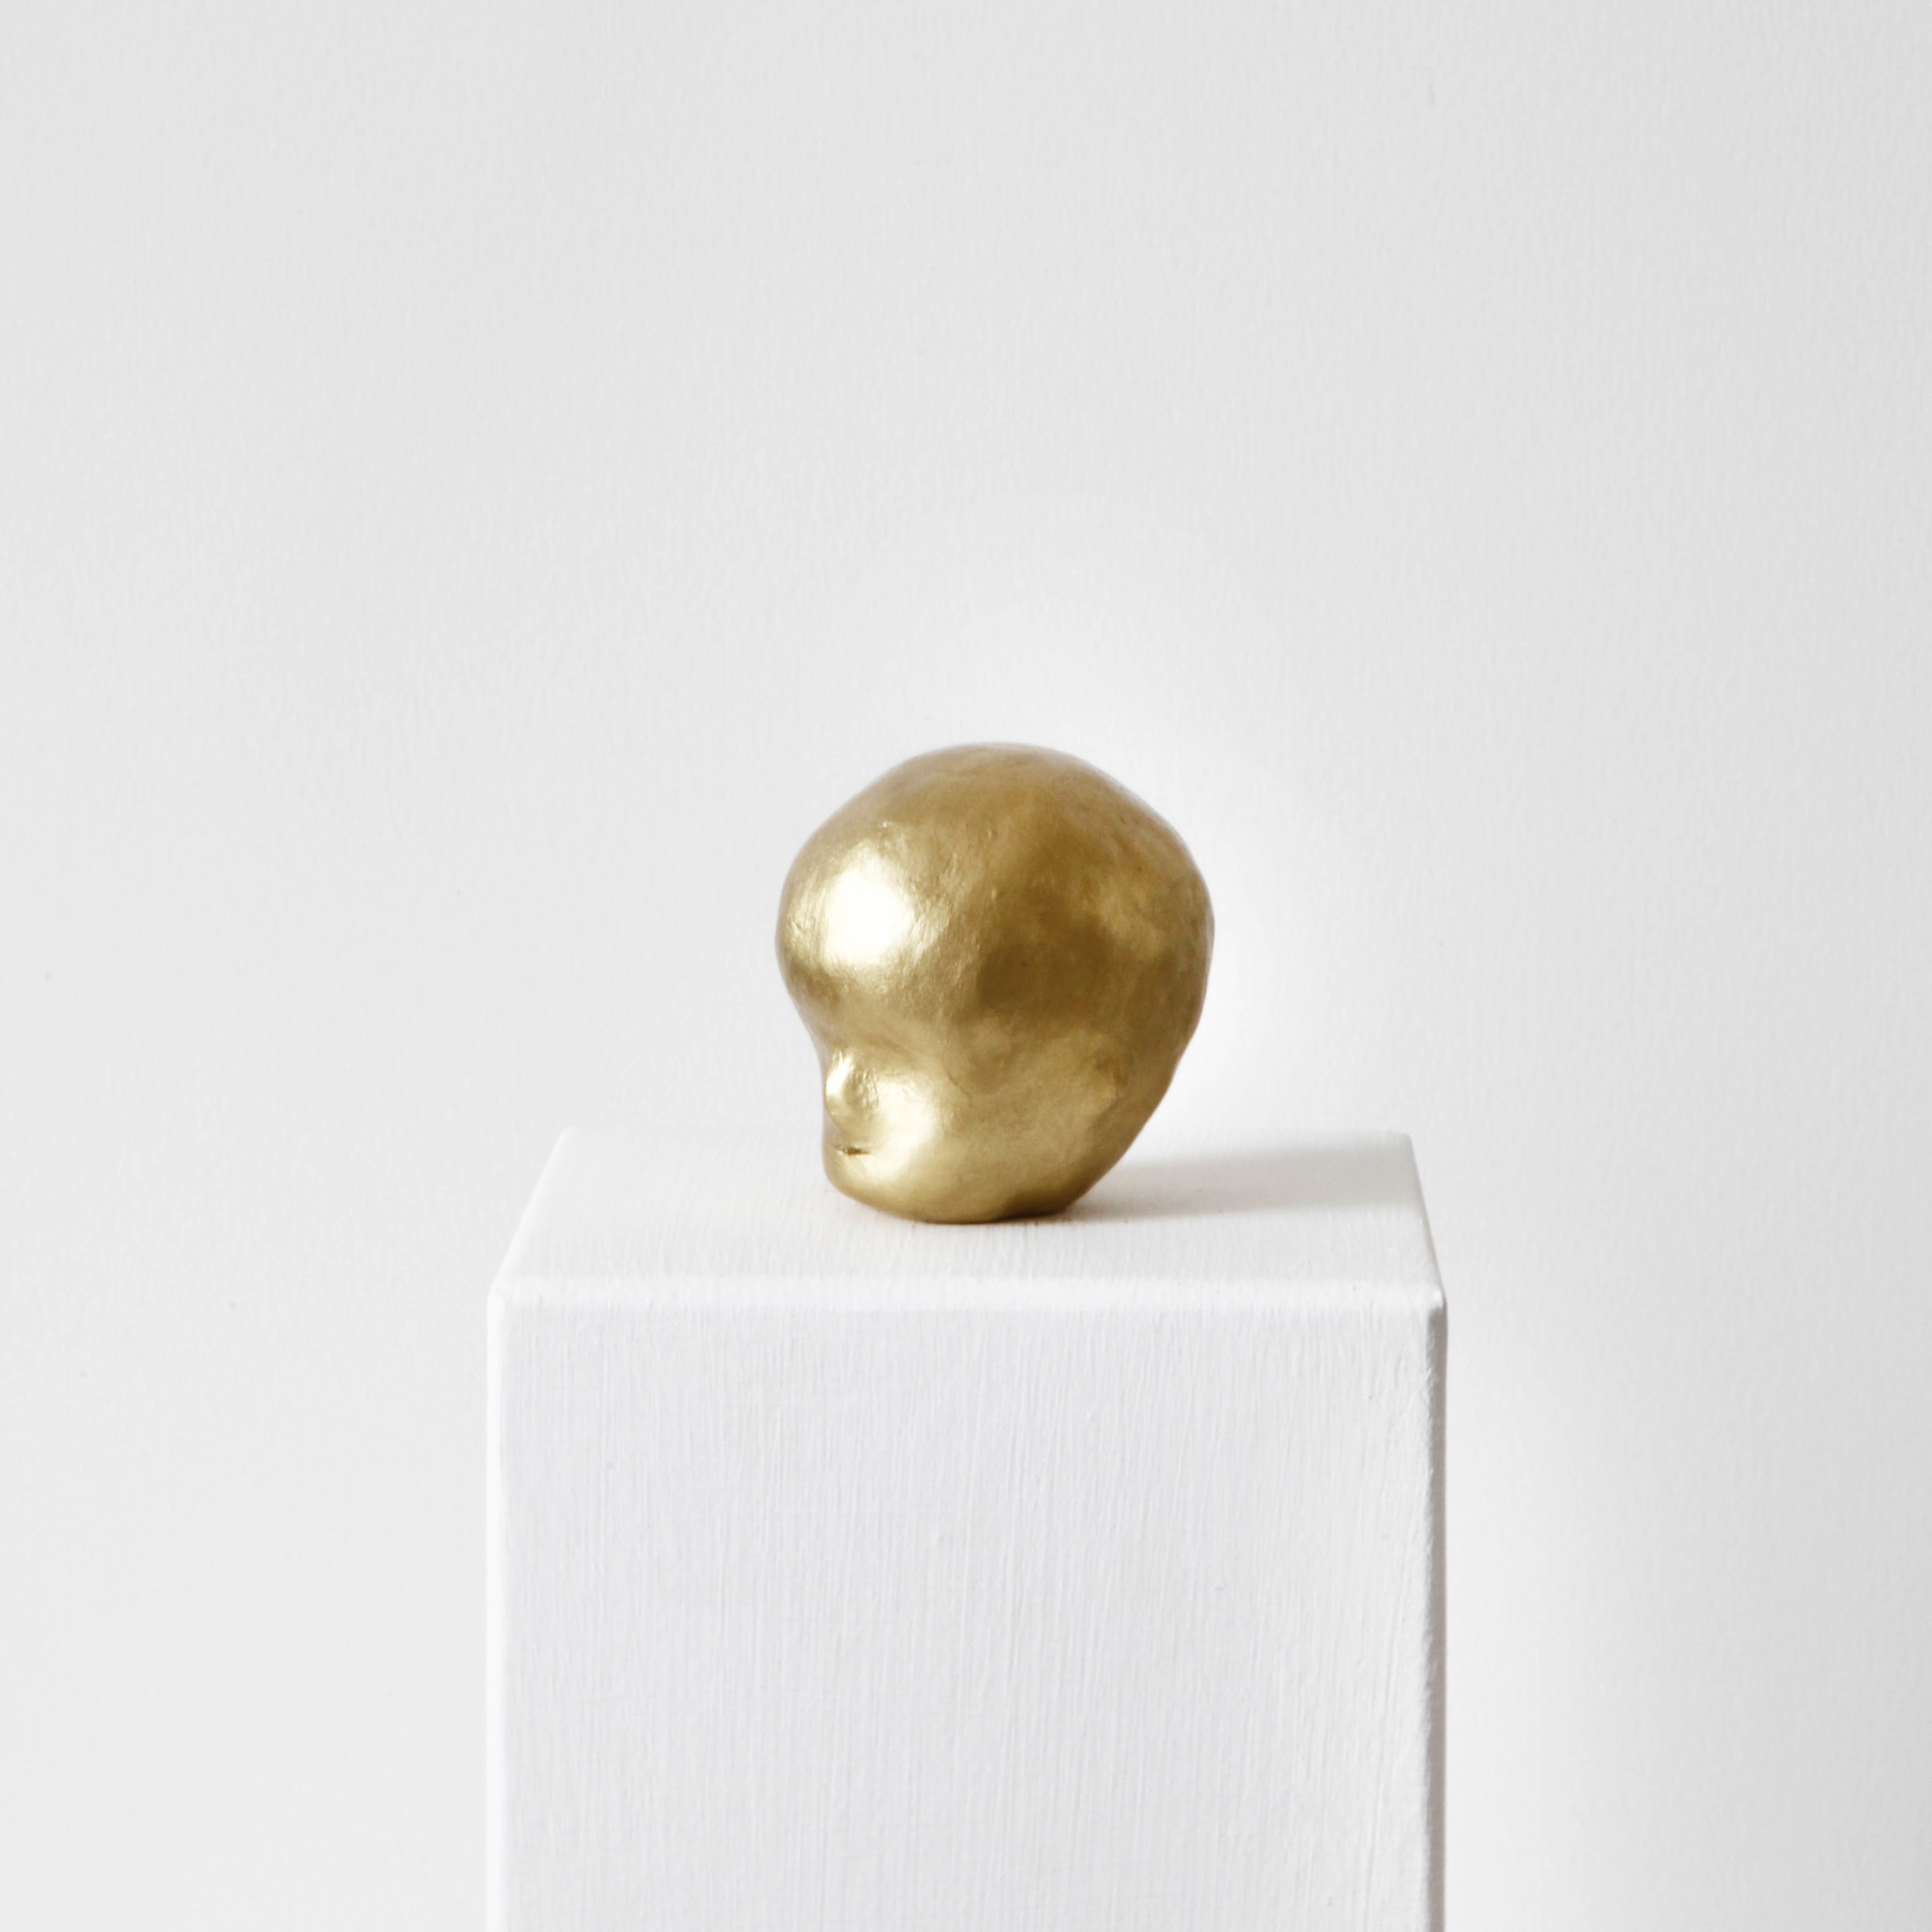 Facial development of the human embryo I  , 2017, raw clay, yellow gold pigment, lacquer and varnish, 7x5,3x6,5cm